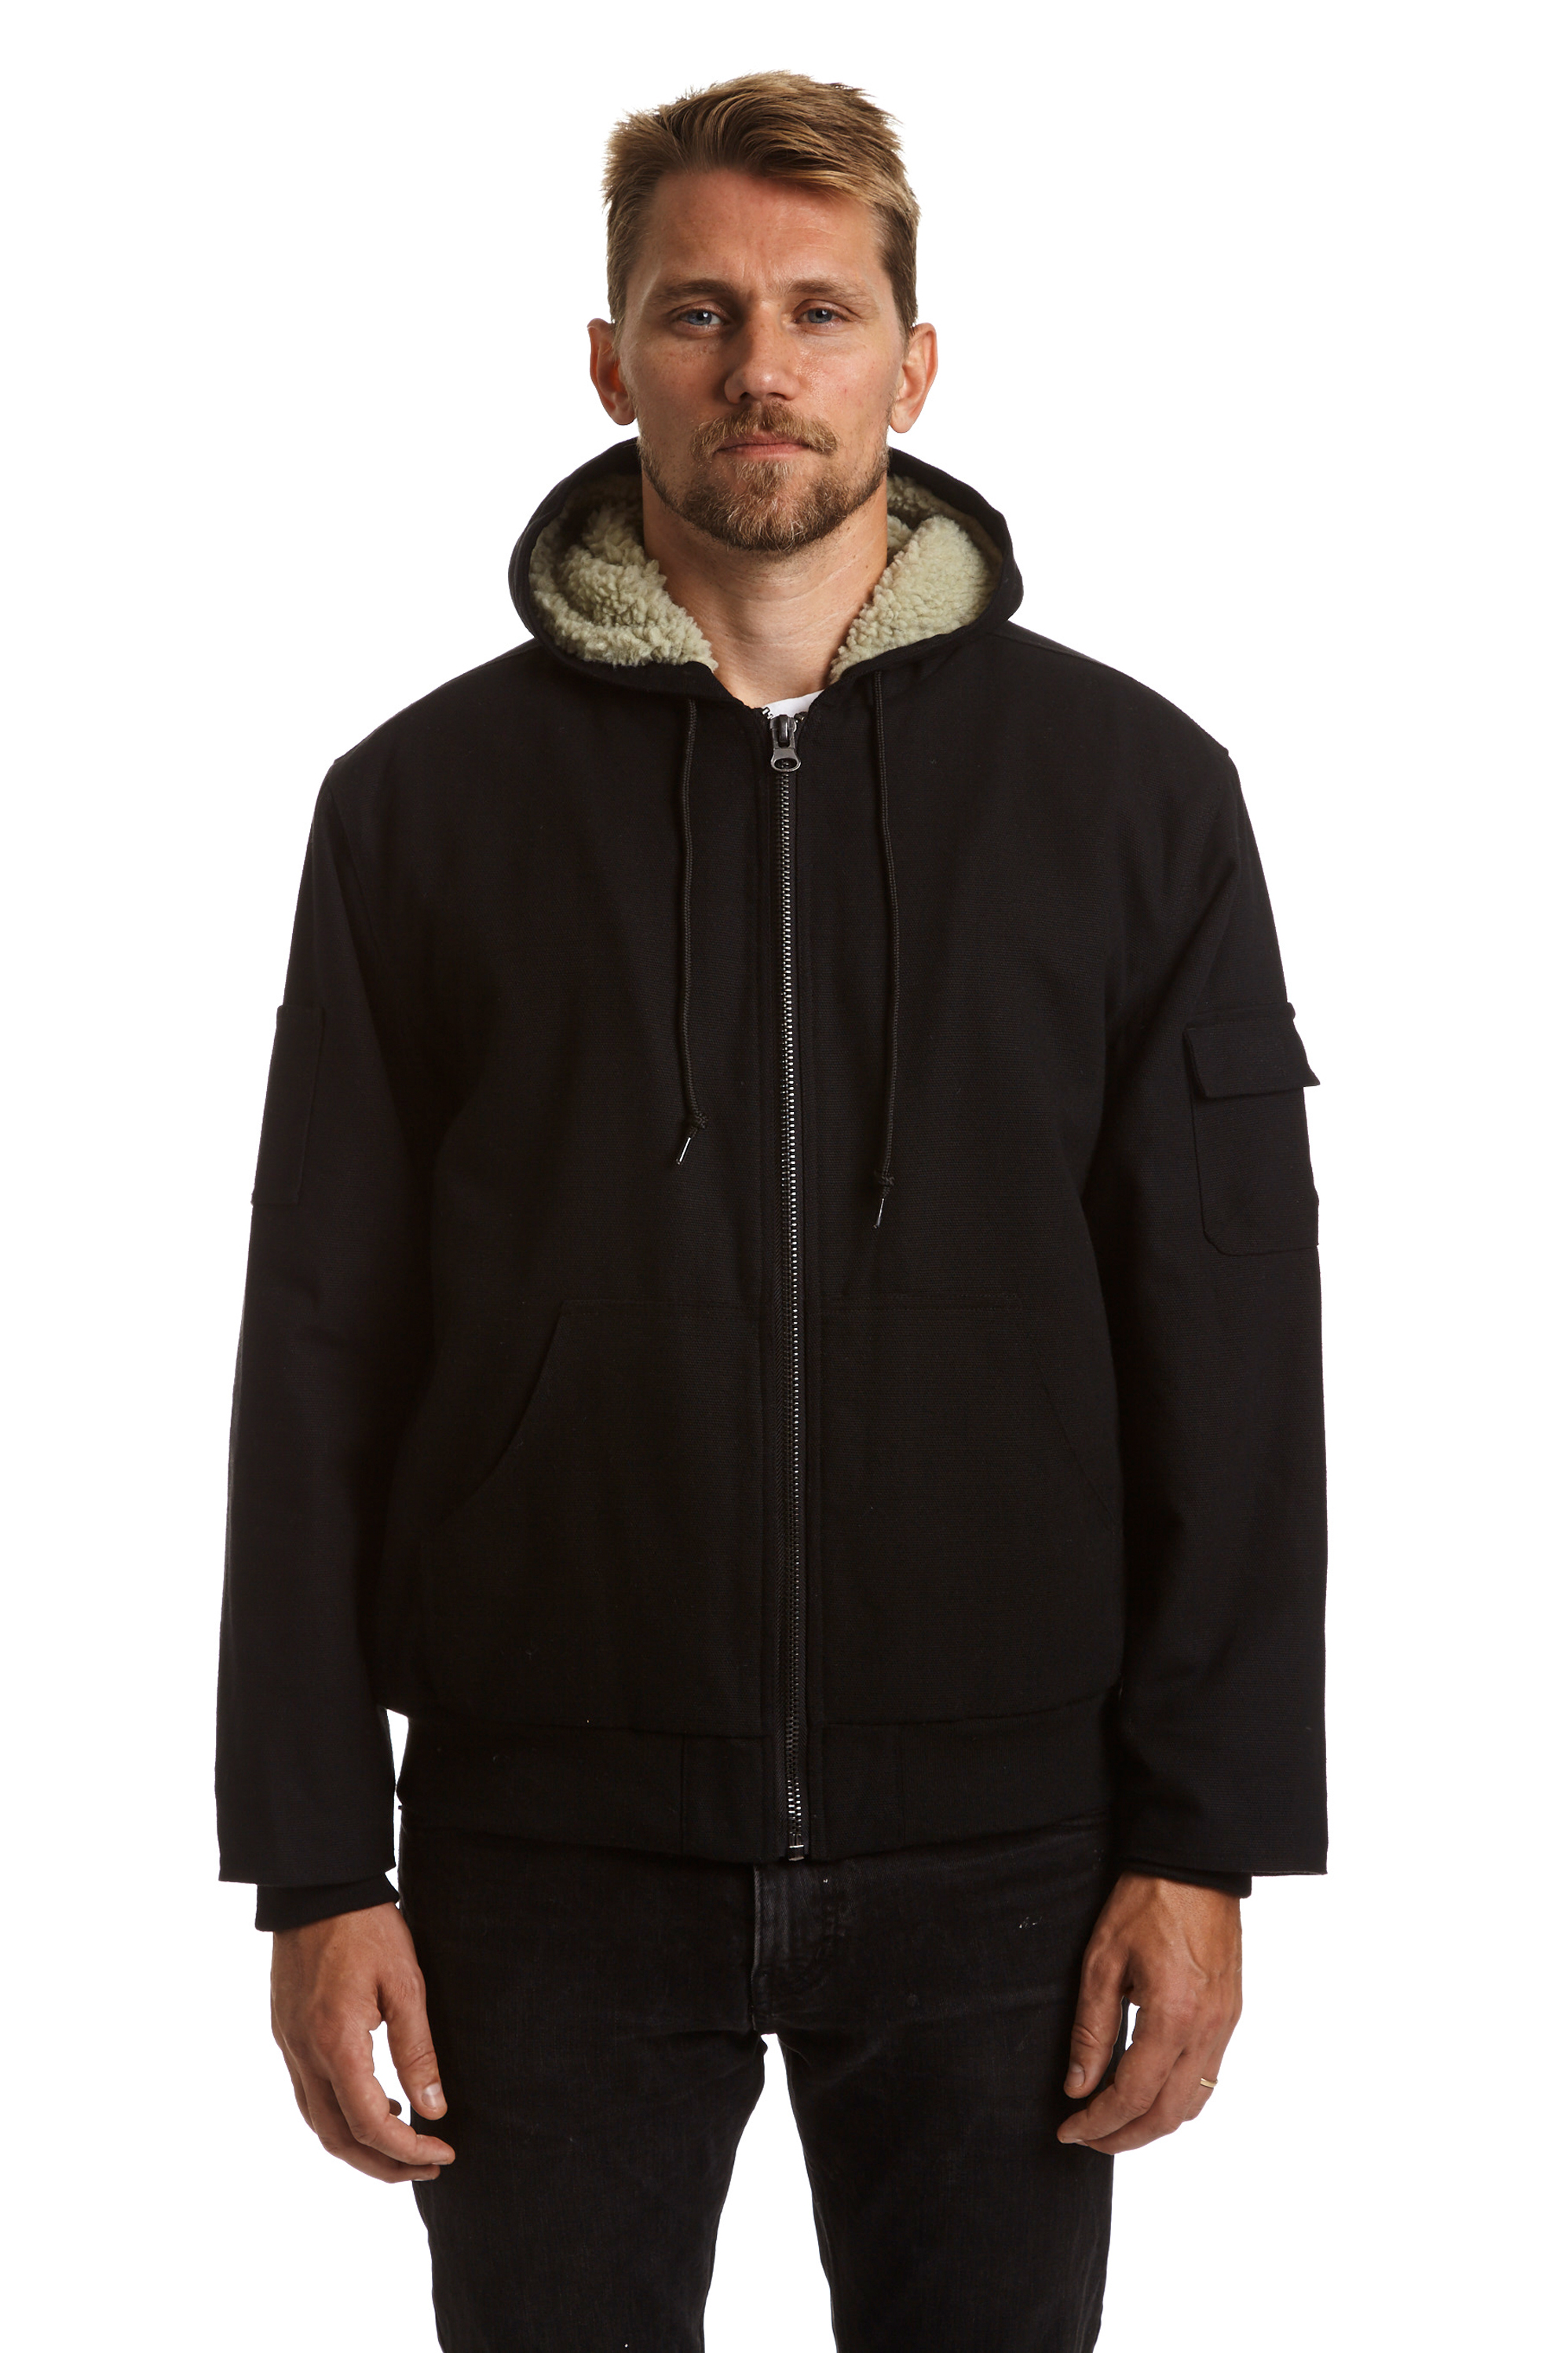 Men's Full Zip Canvas Jacket with Sherpa Lining